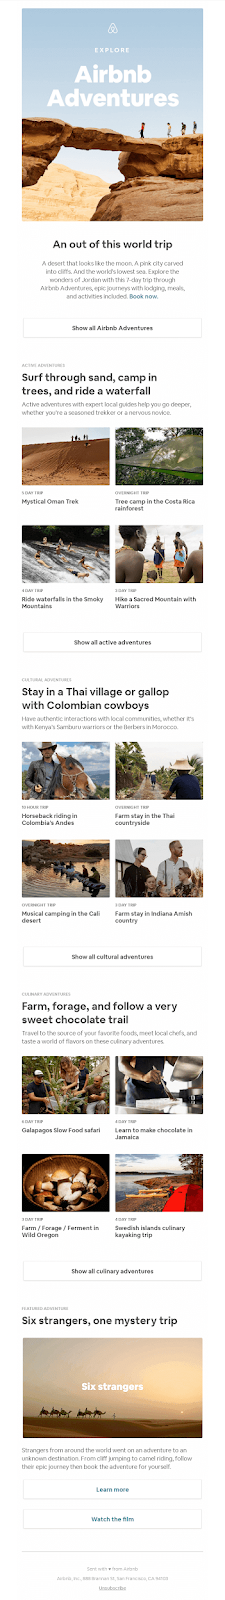 Airbnb - Email Marketing Campaign